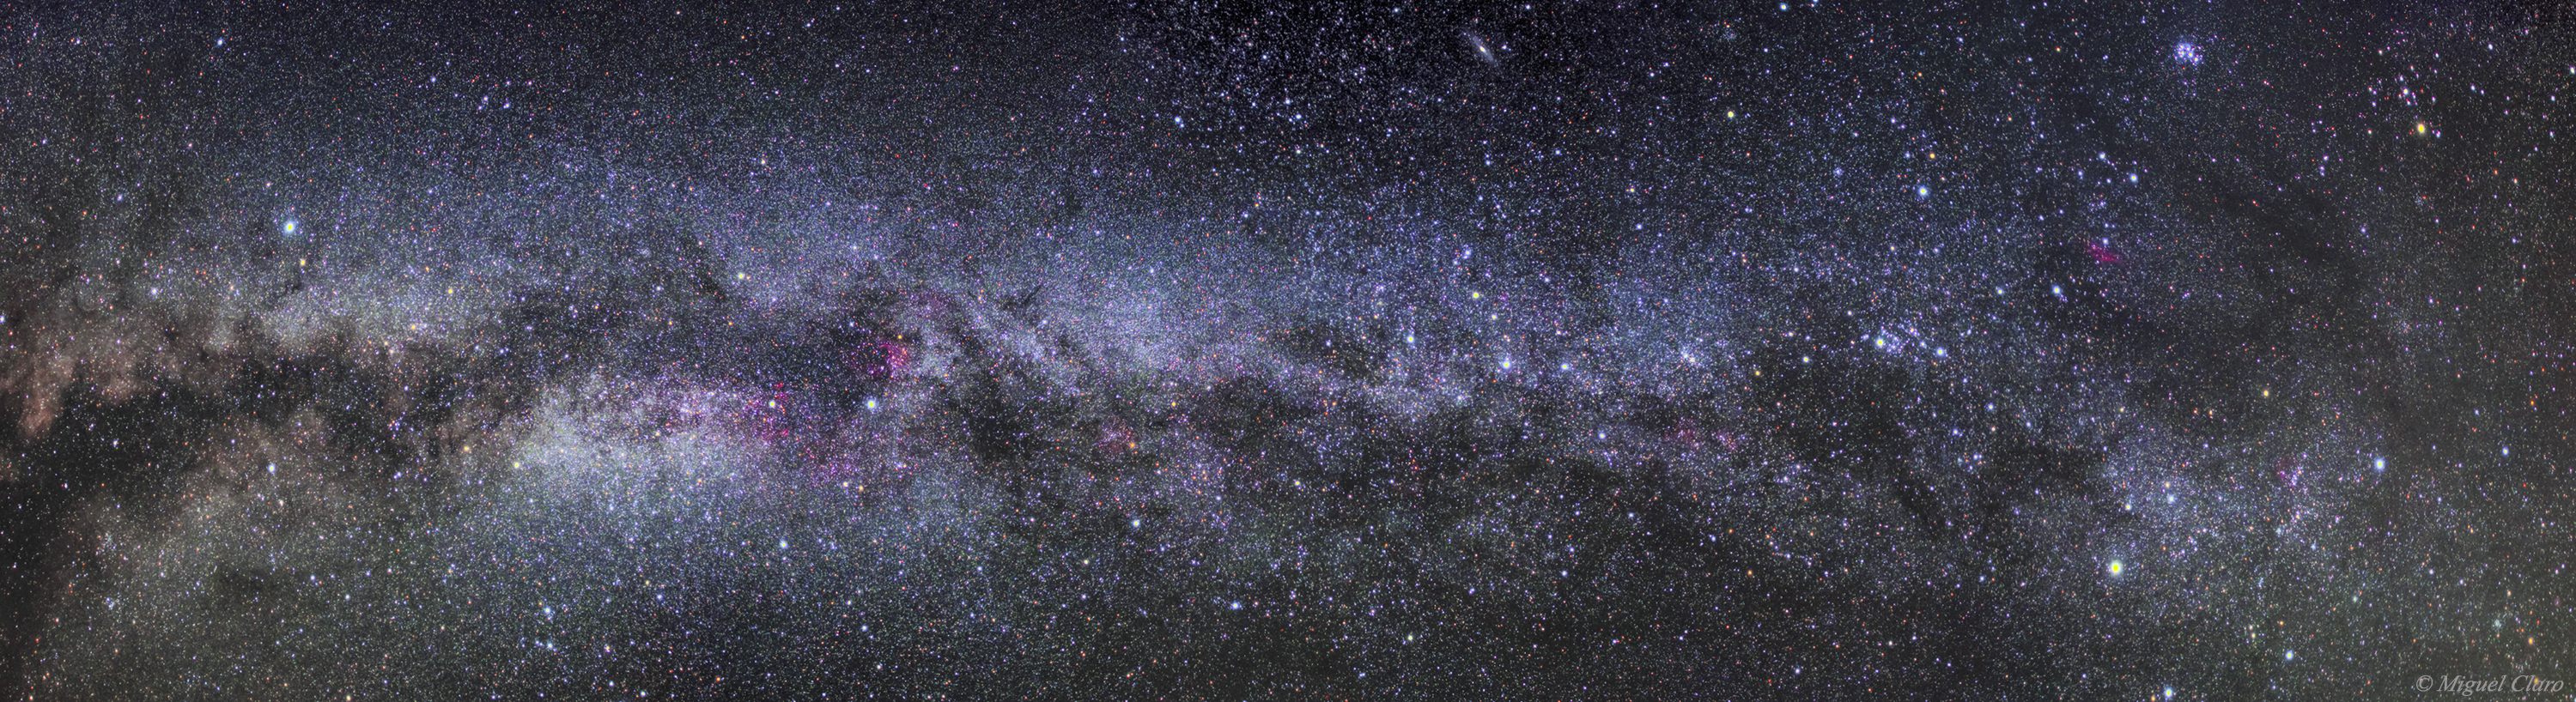 Deep sky wide field view of Milky Way galaxy from La Palma by Miguel Claro - AstroMaster La Palma 2013